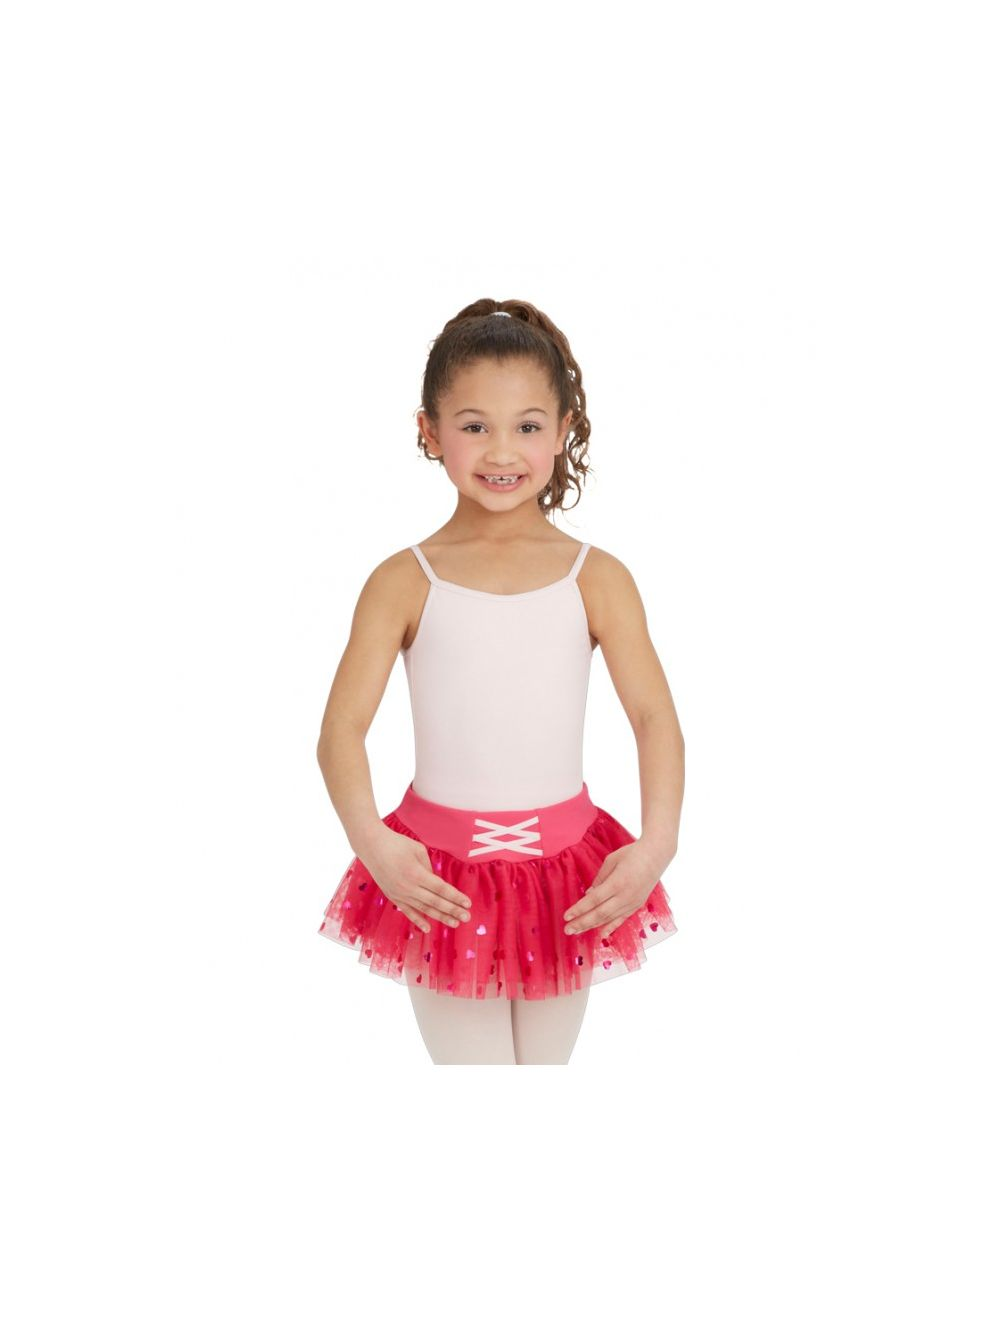 Capezio Girl's Hot Pink Heart Tutu Skirt